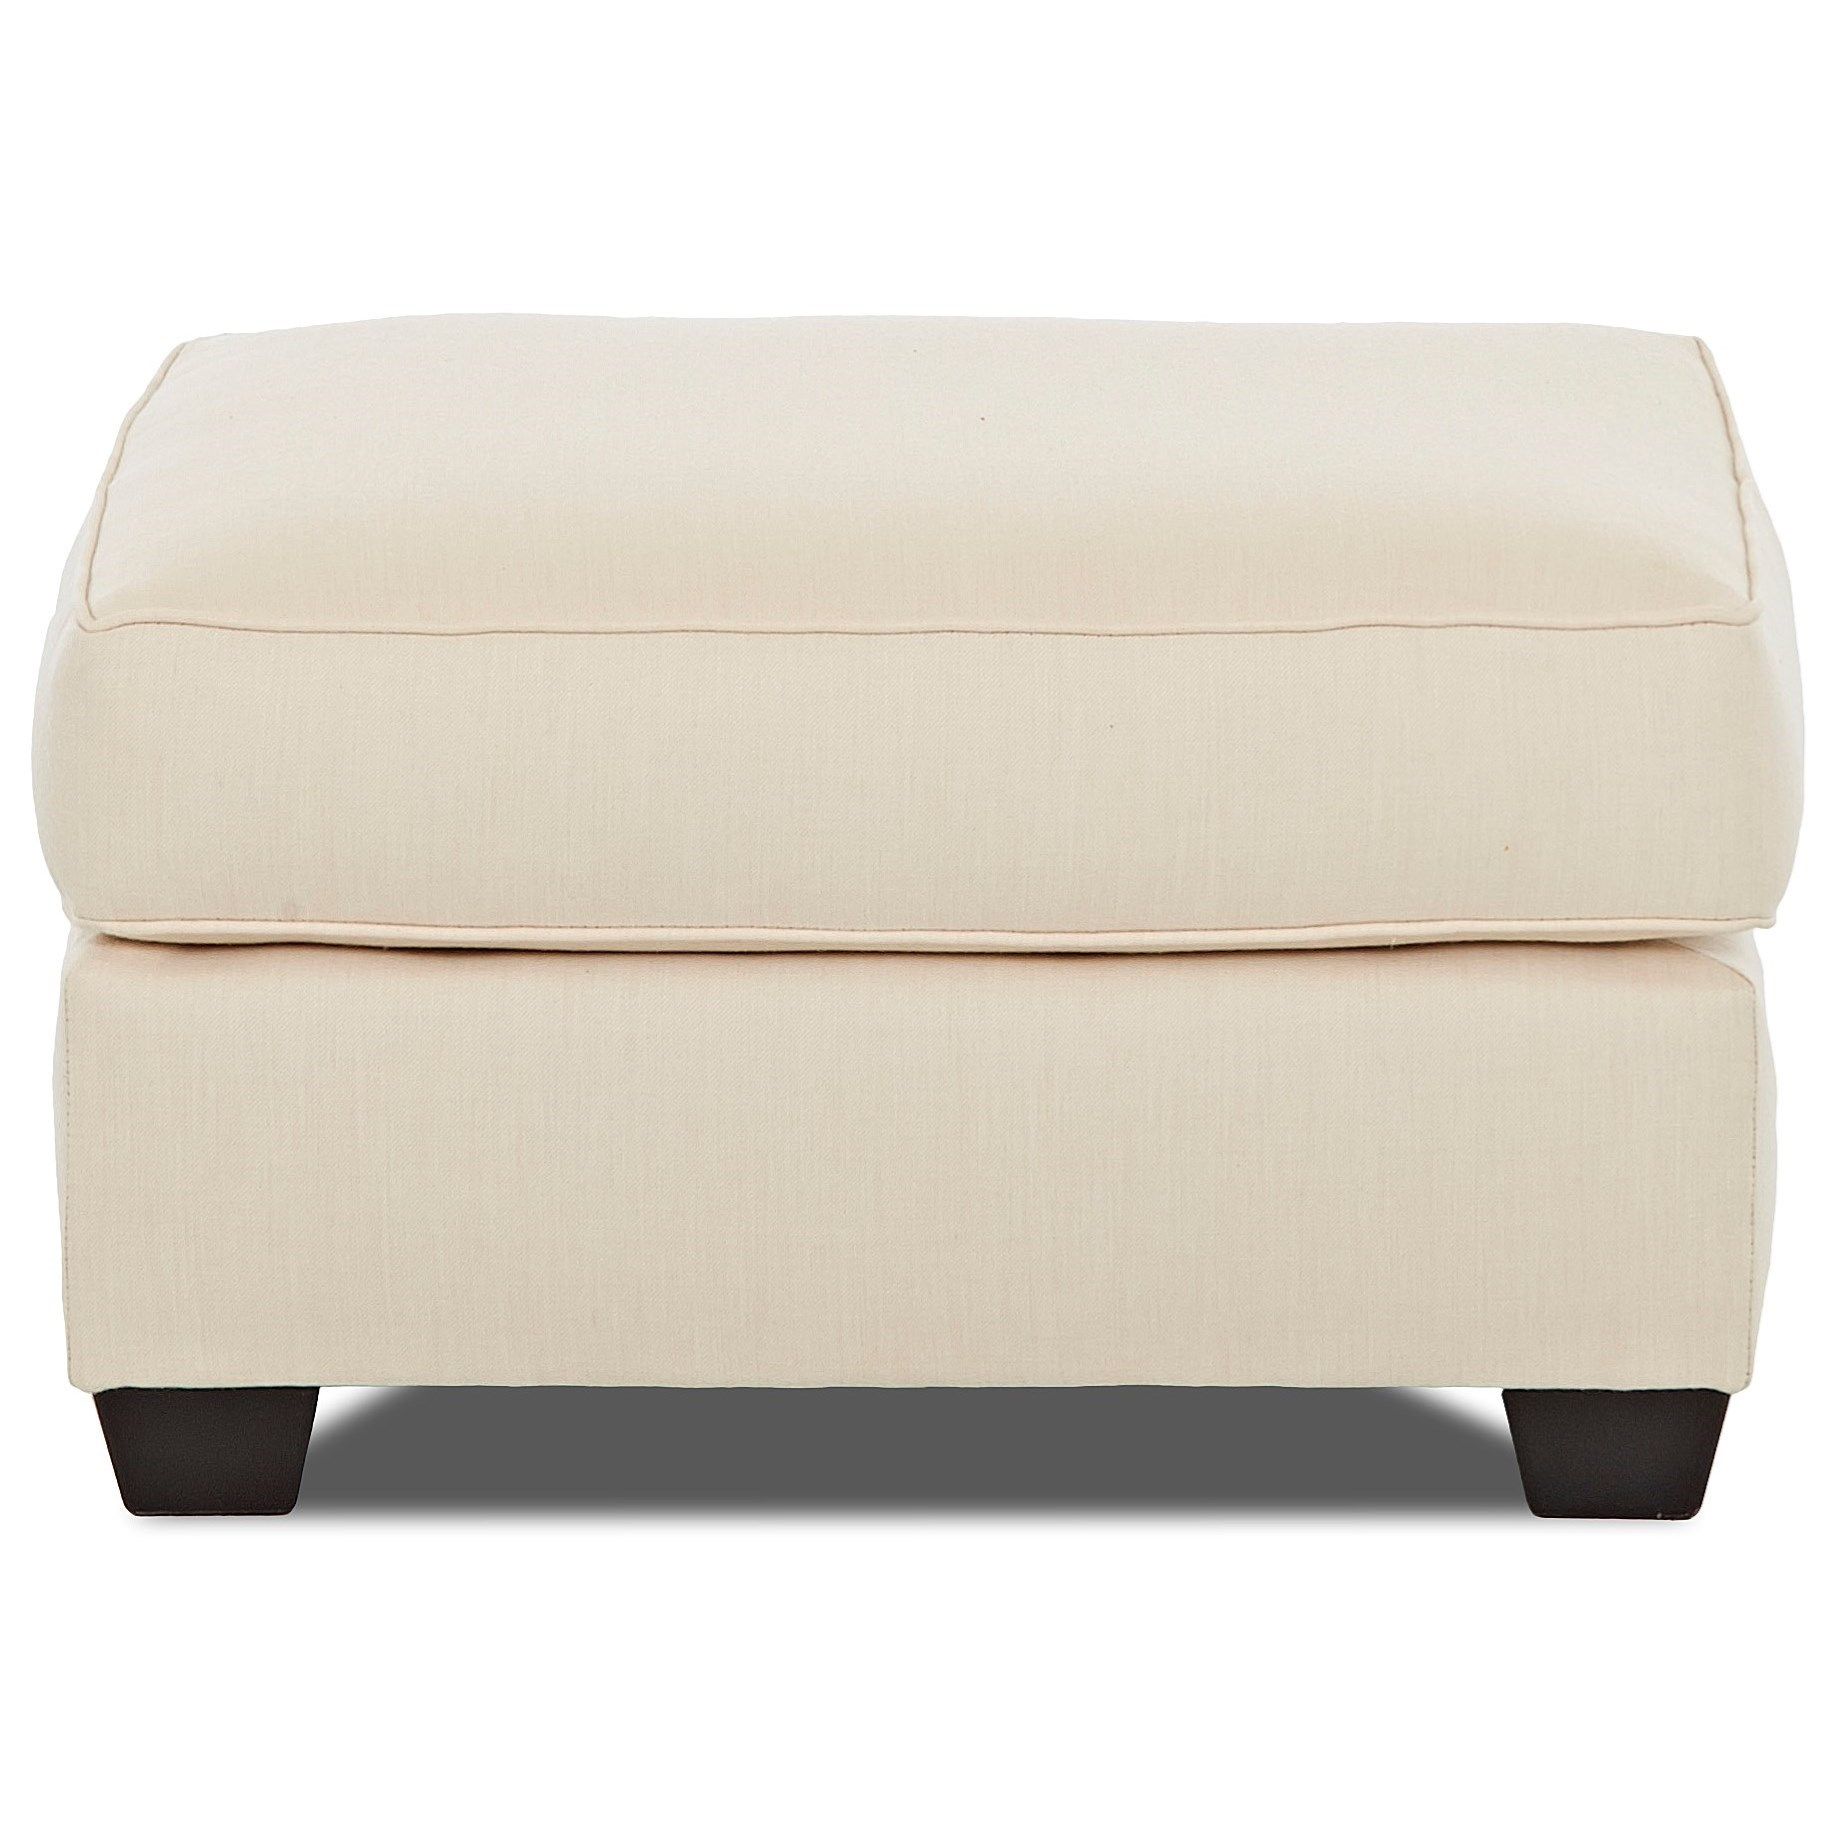 Klaussner Linville Ottoman - Item Number: K80400 OTTO-FLAGSHIP VELLUM